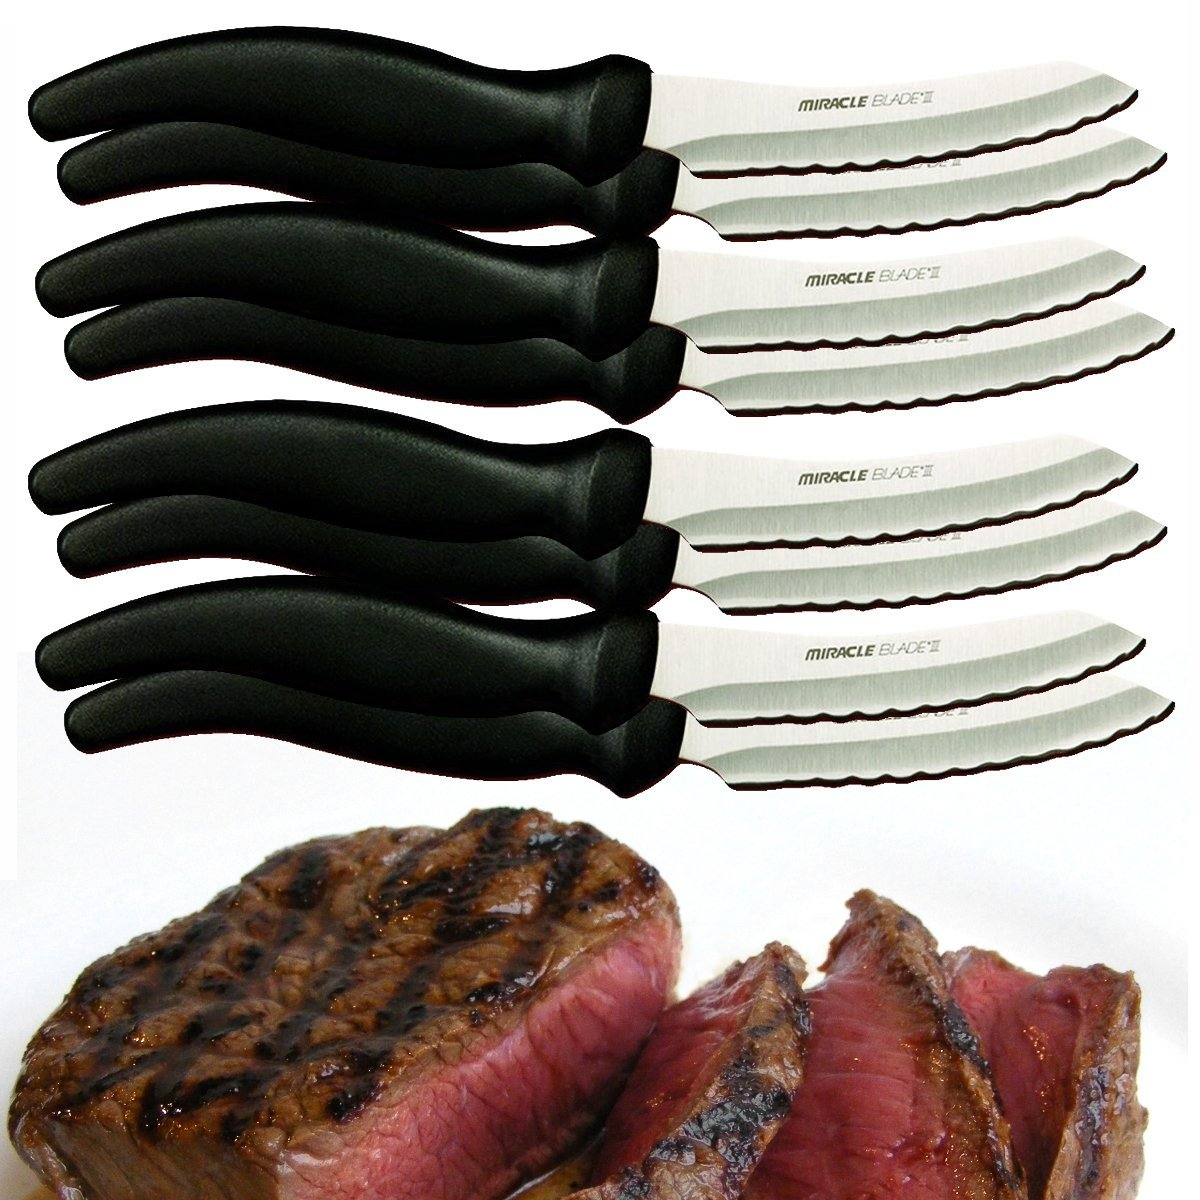 8pc Miracle Blade III Perfection Series Knife Set Stainless Steel Cutlery Steak Knives